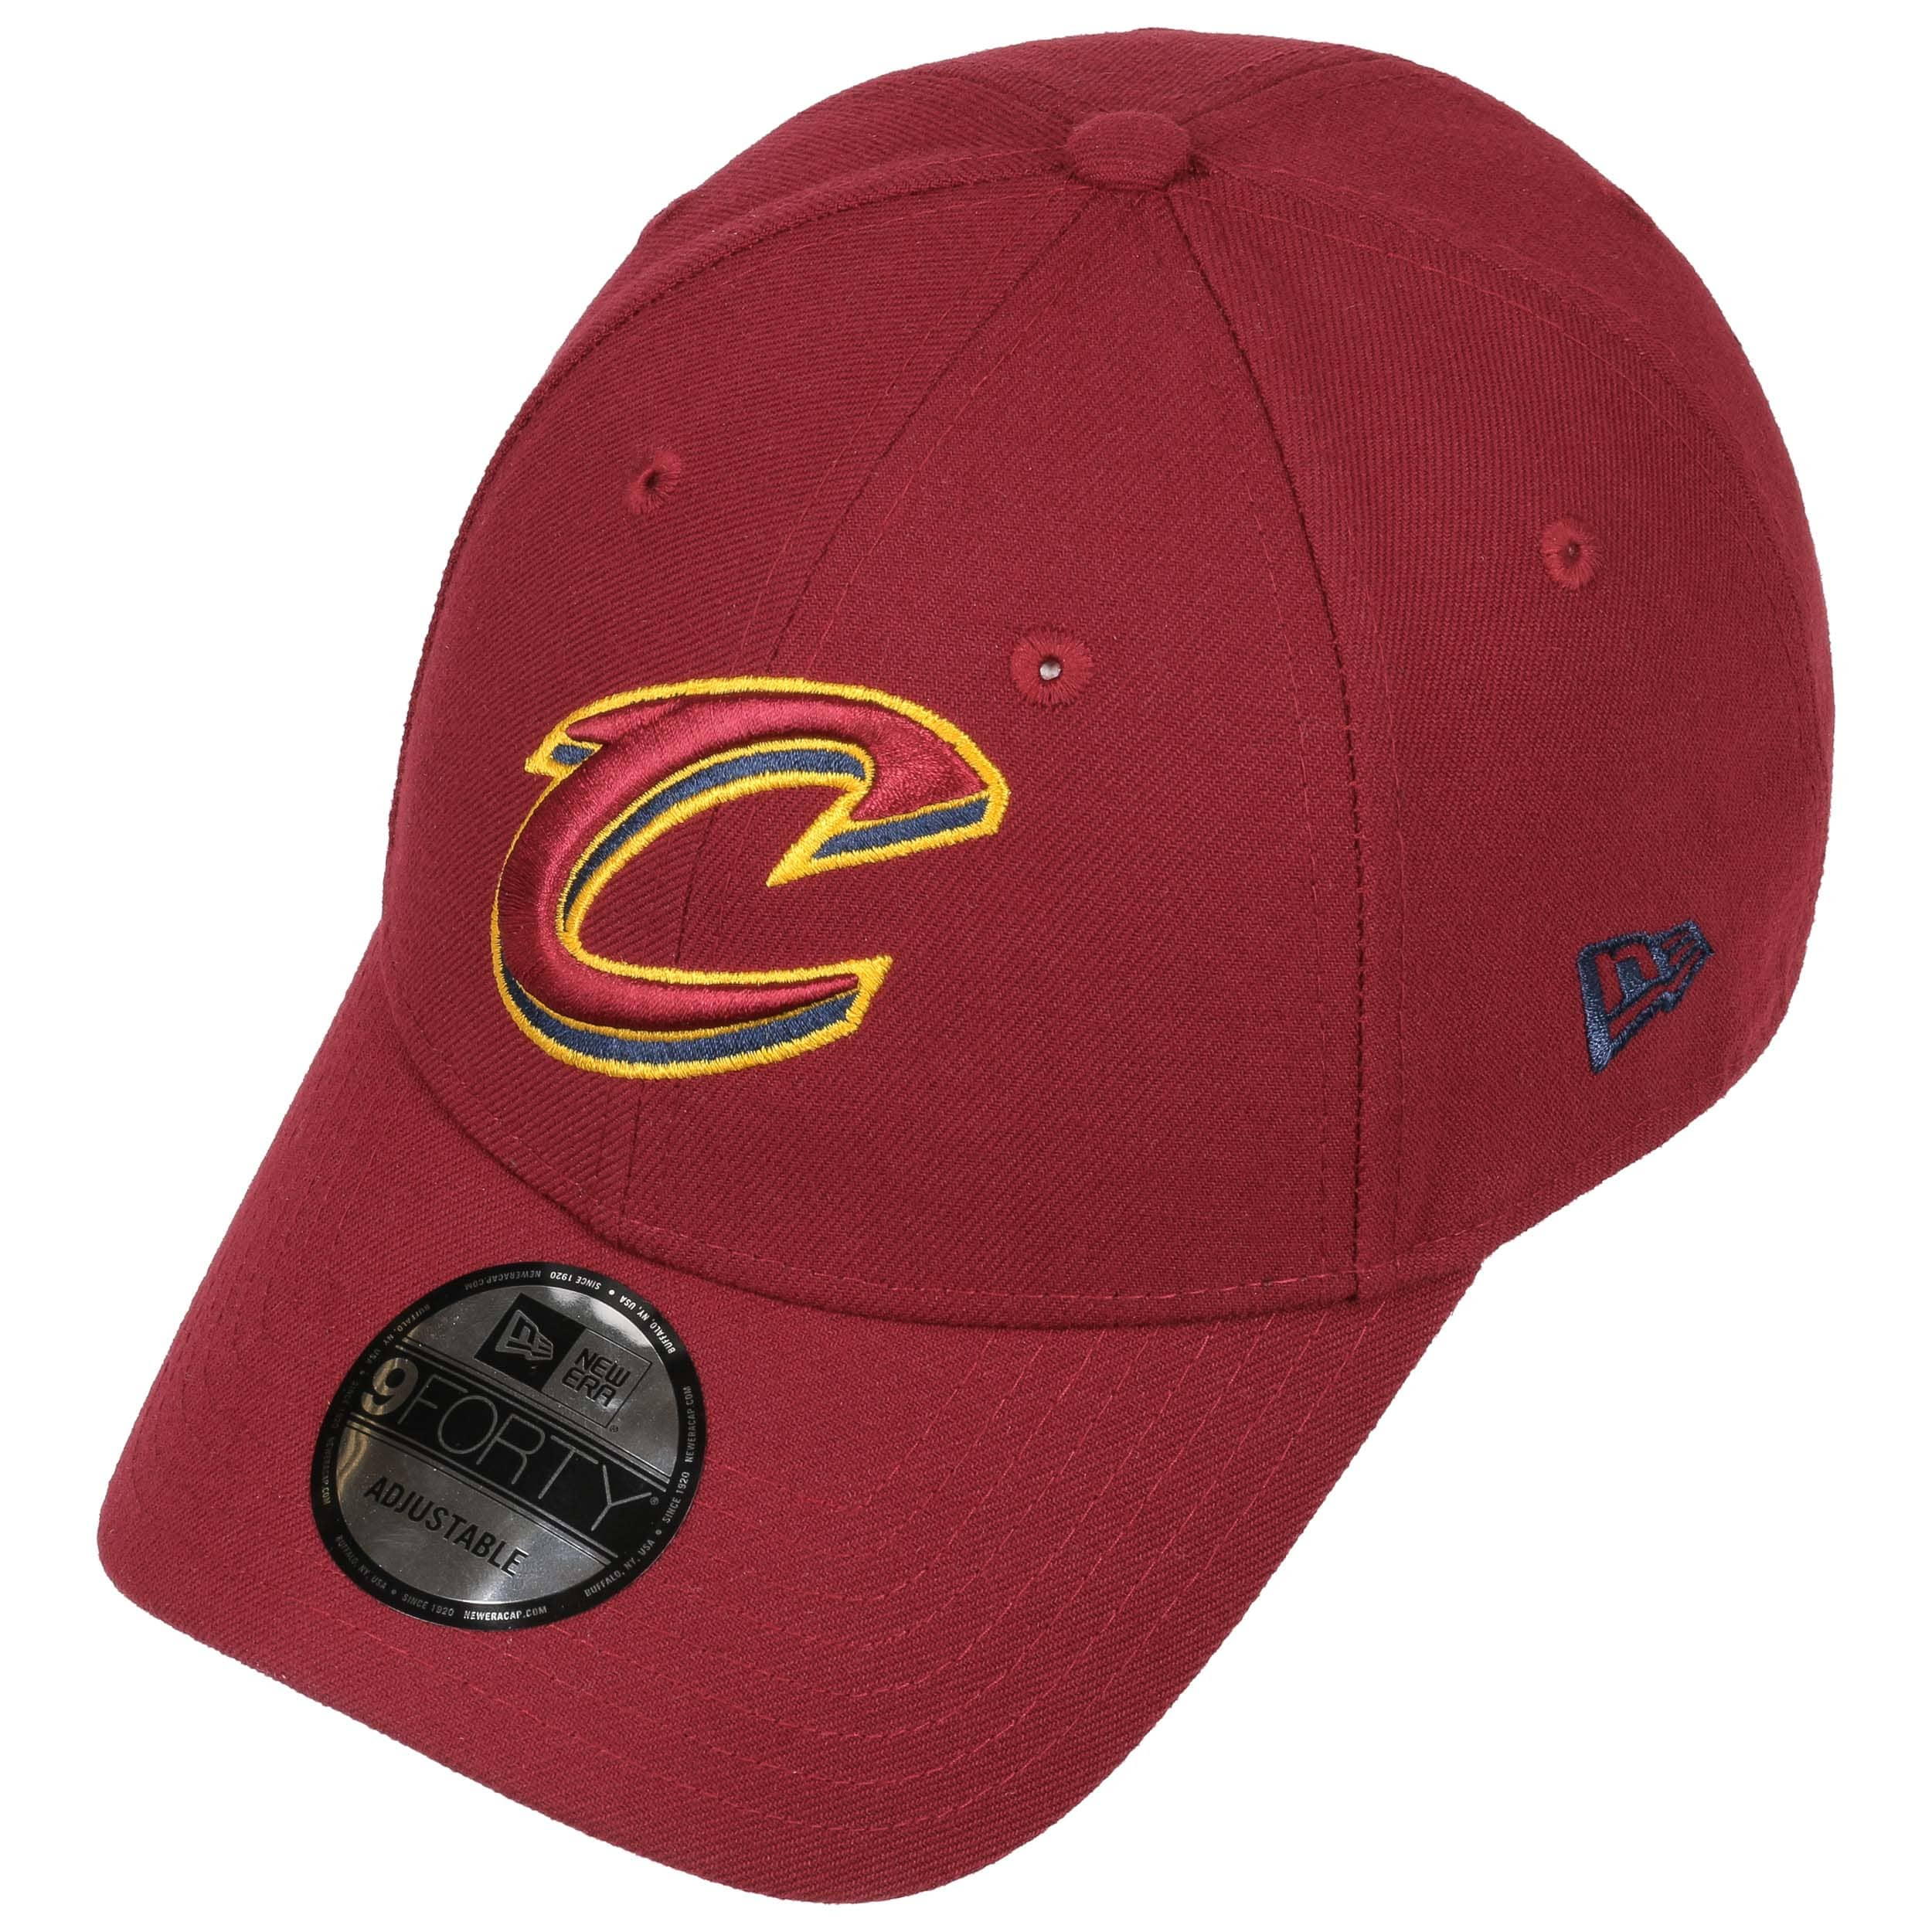 Cappellino 9Forty League Cavs by New Era - rosso bordeaux 1 ... 43077522c622